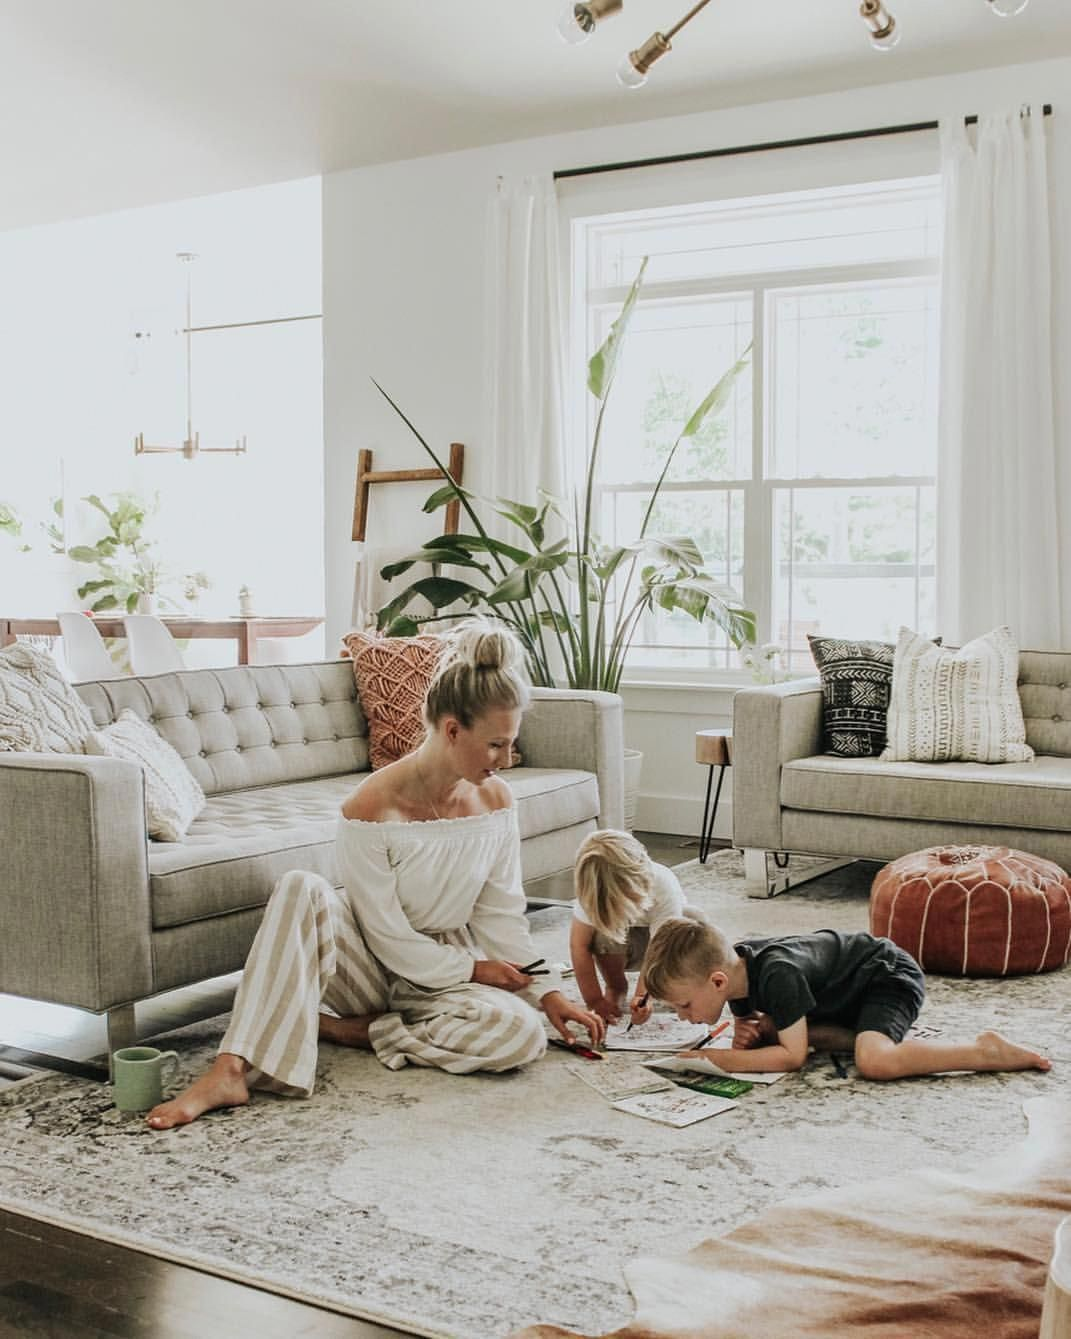 Family Home Decor Momstyle Homeremodelingpictures Home Decor Asian Home Decor Home